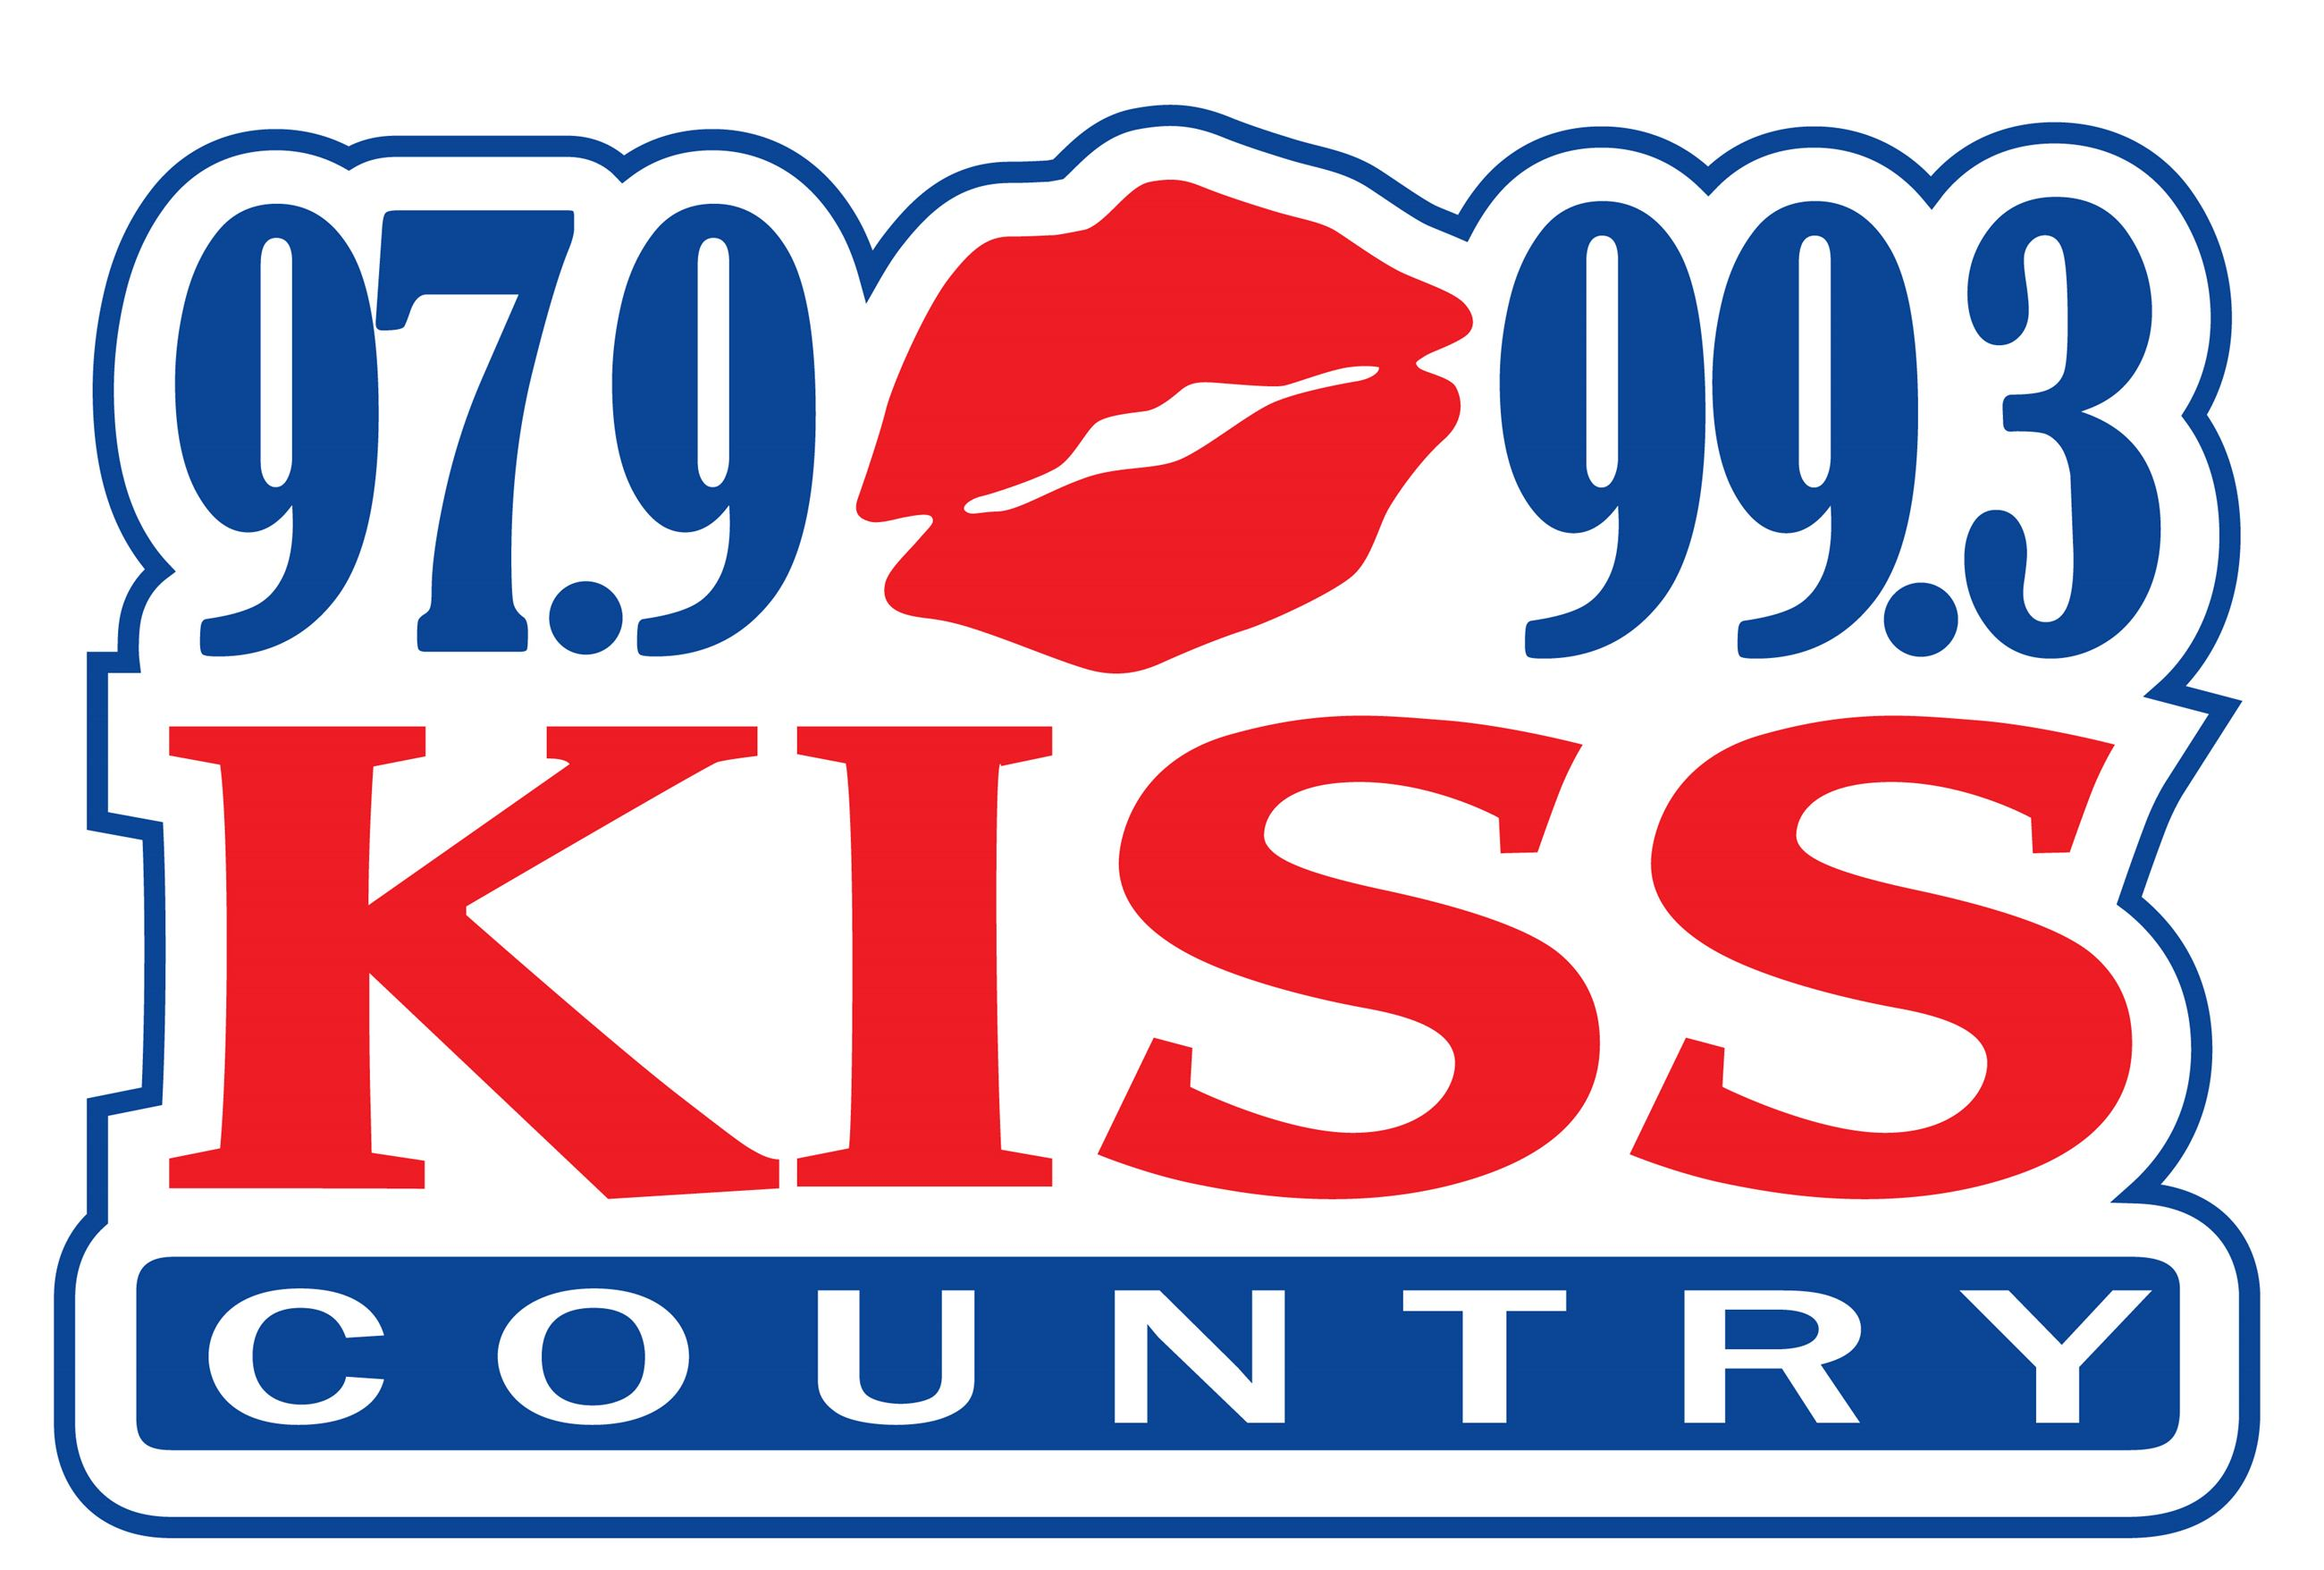 New KISZ logo with 99.3